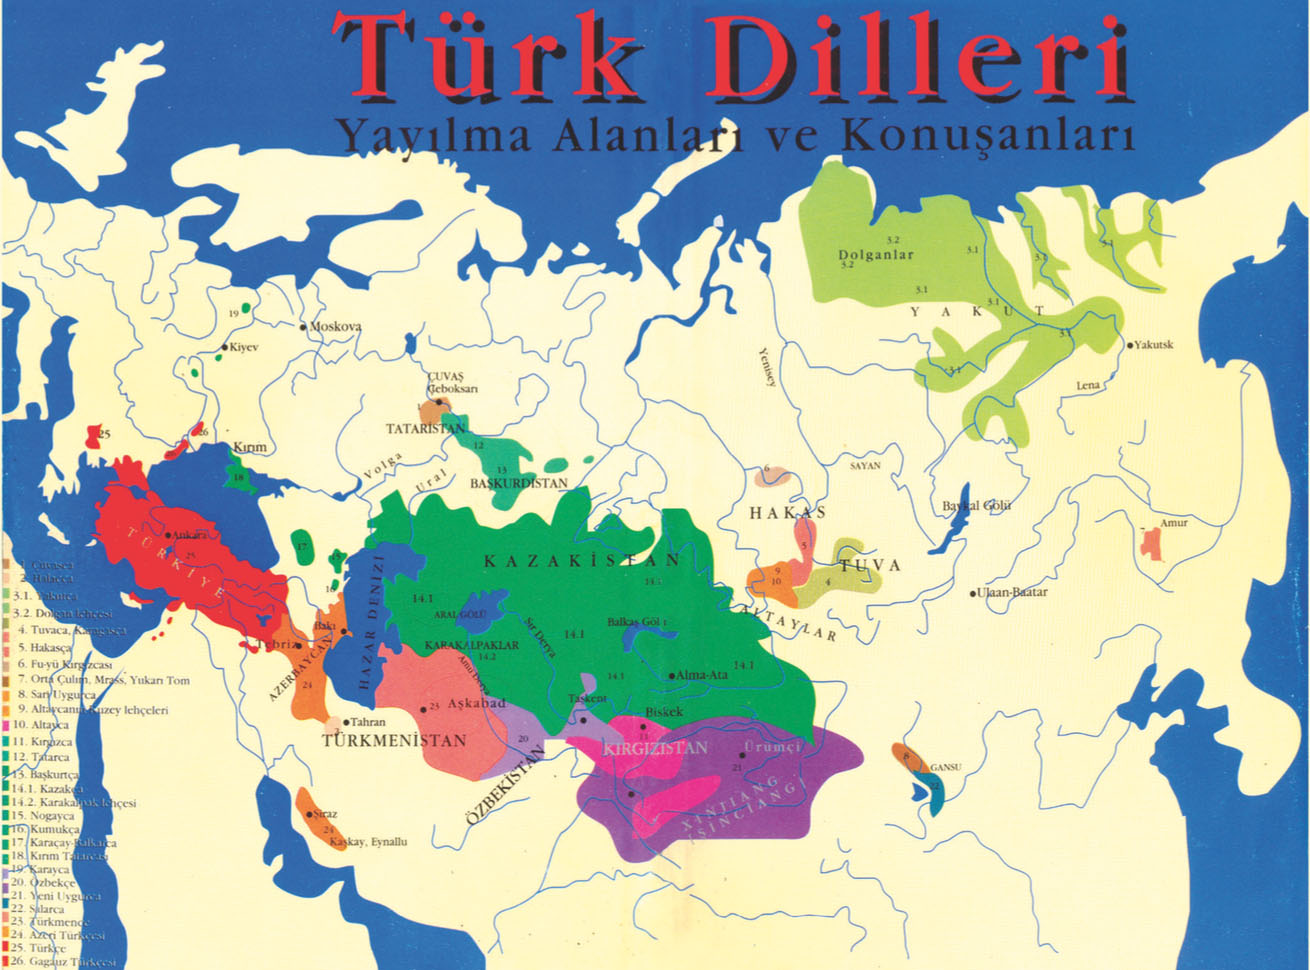 A map of the Turkic languages, most of whose speakers have historically been under Russian and not Ottoman rule.